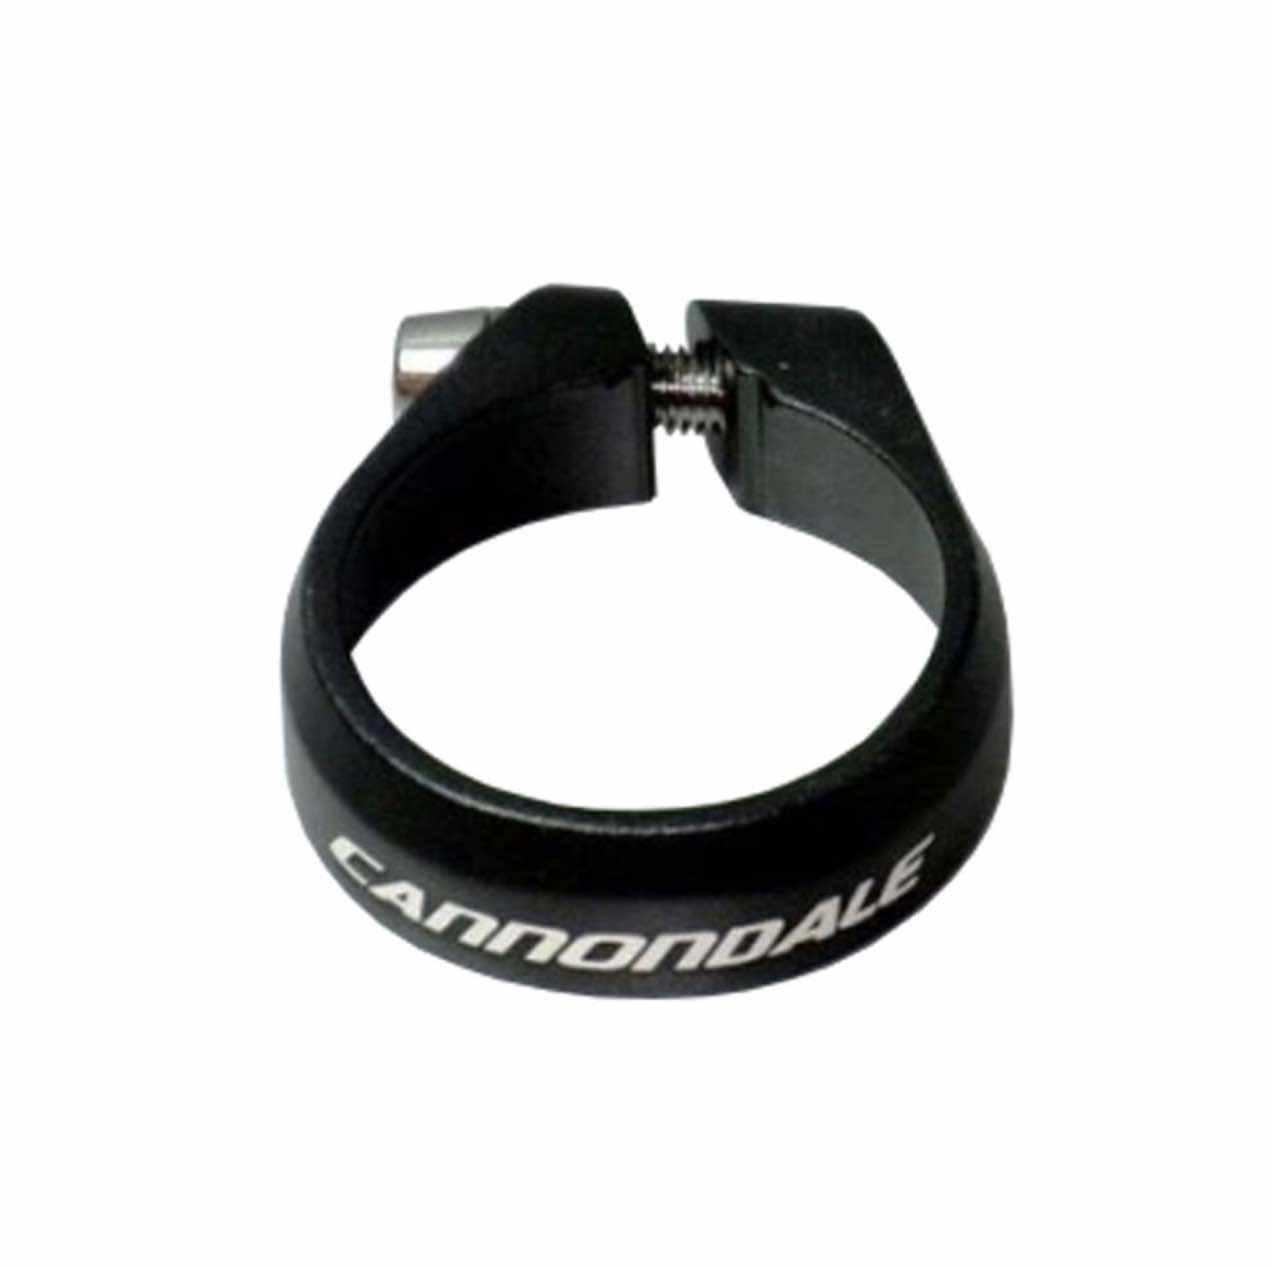 Cannondale sadelklampe sort - KP388 | Seat Clamp